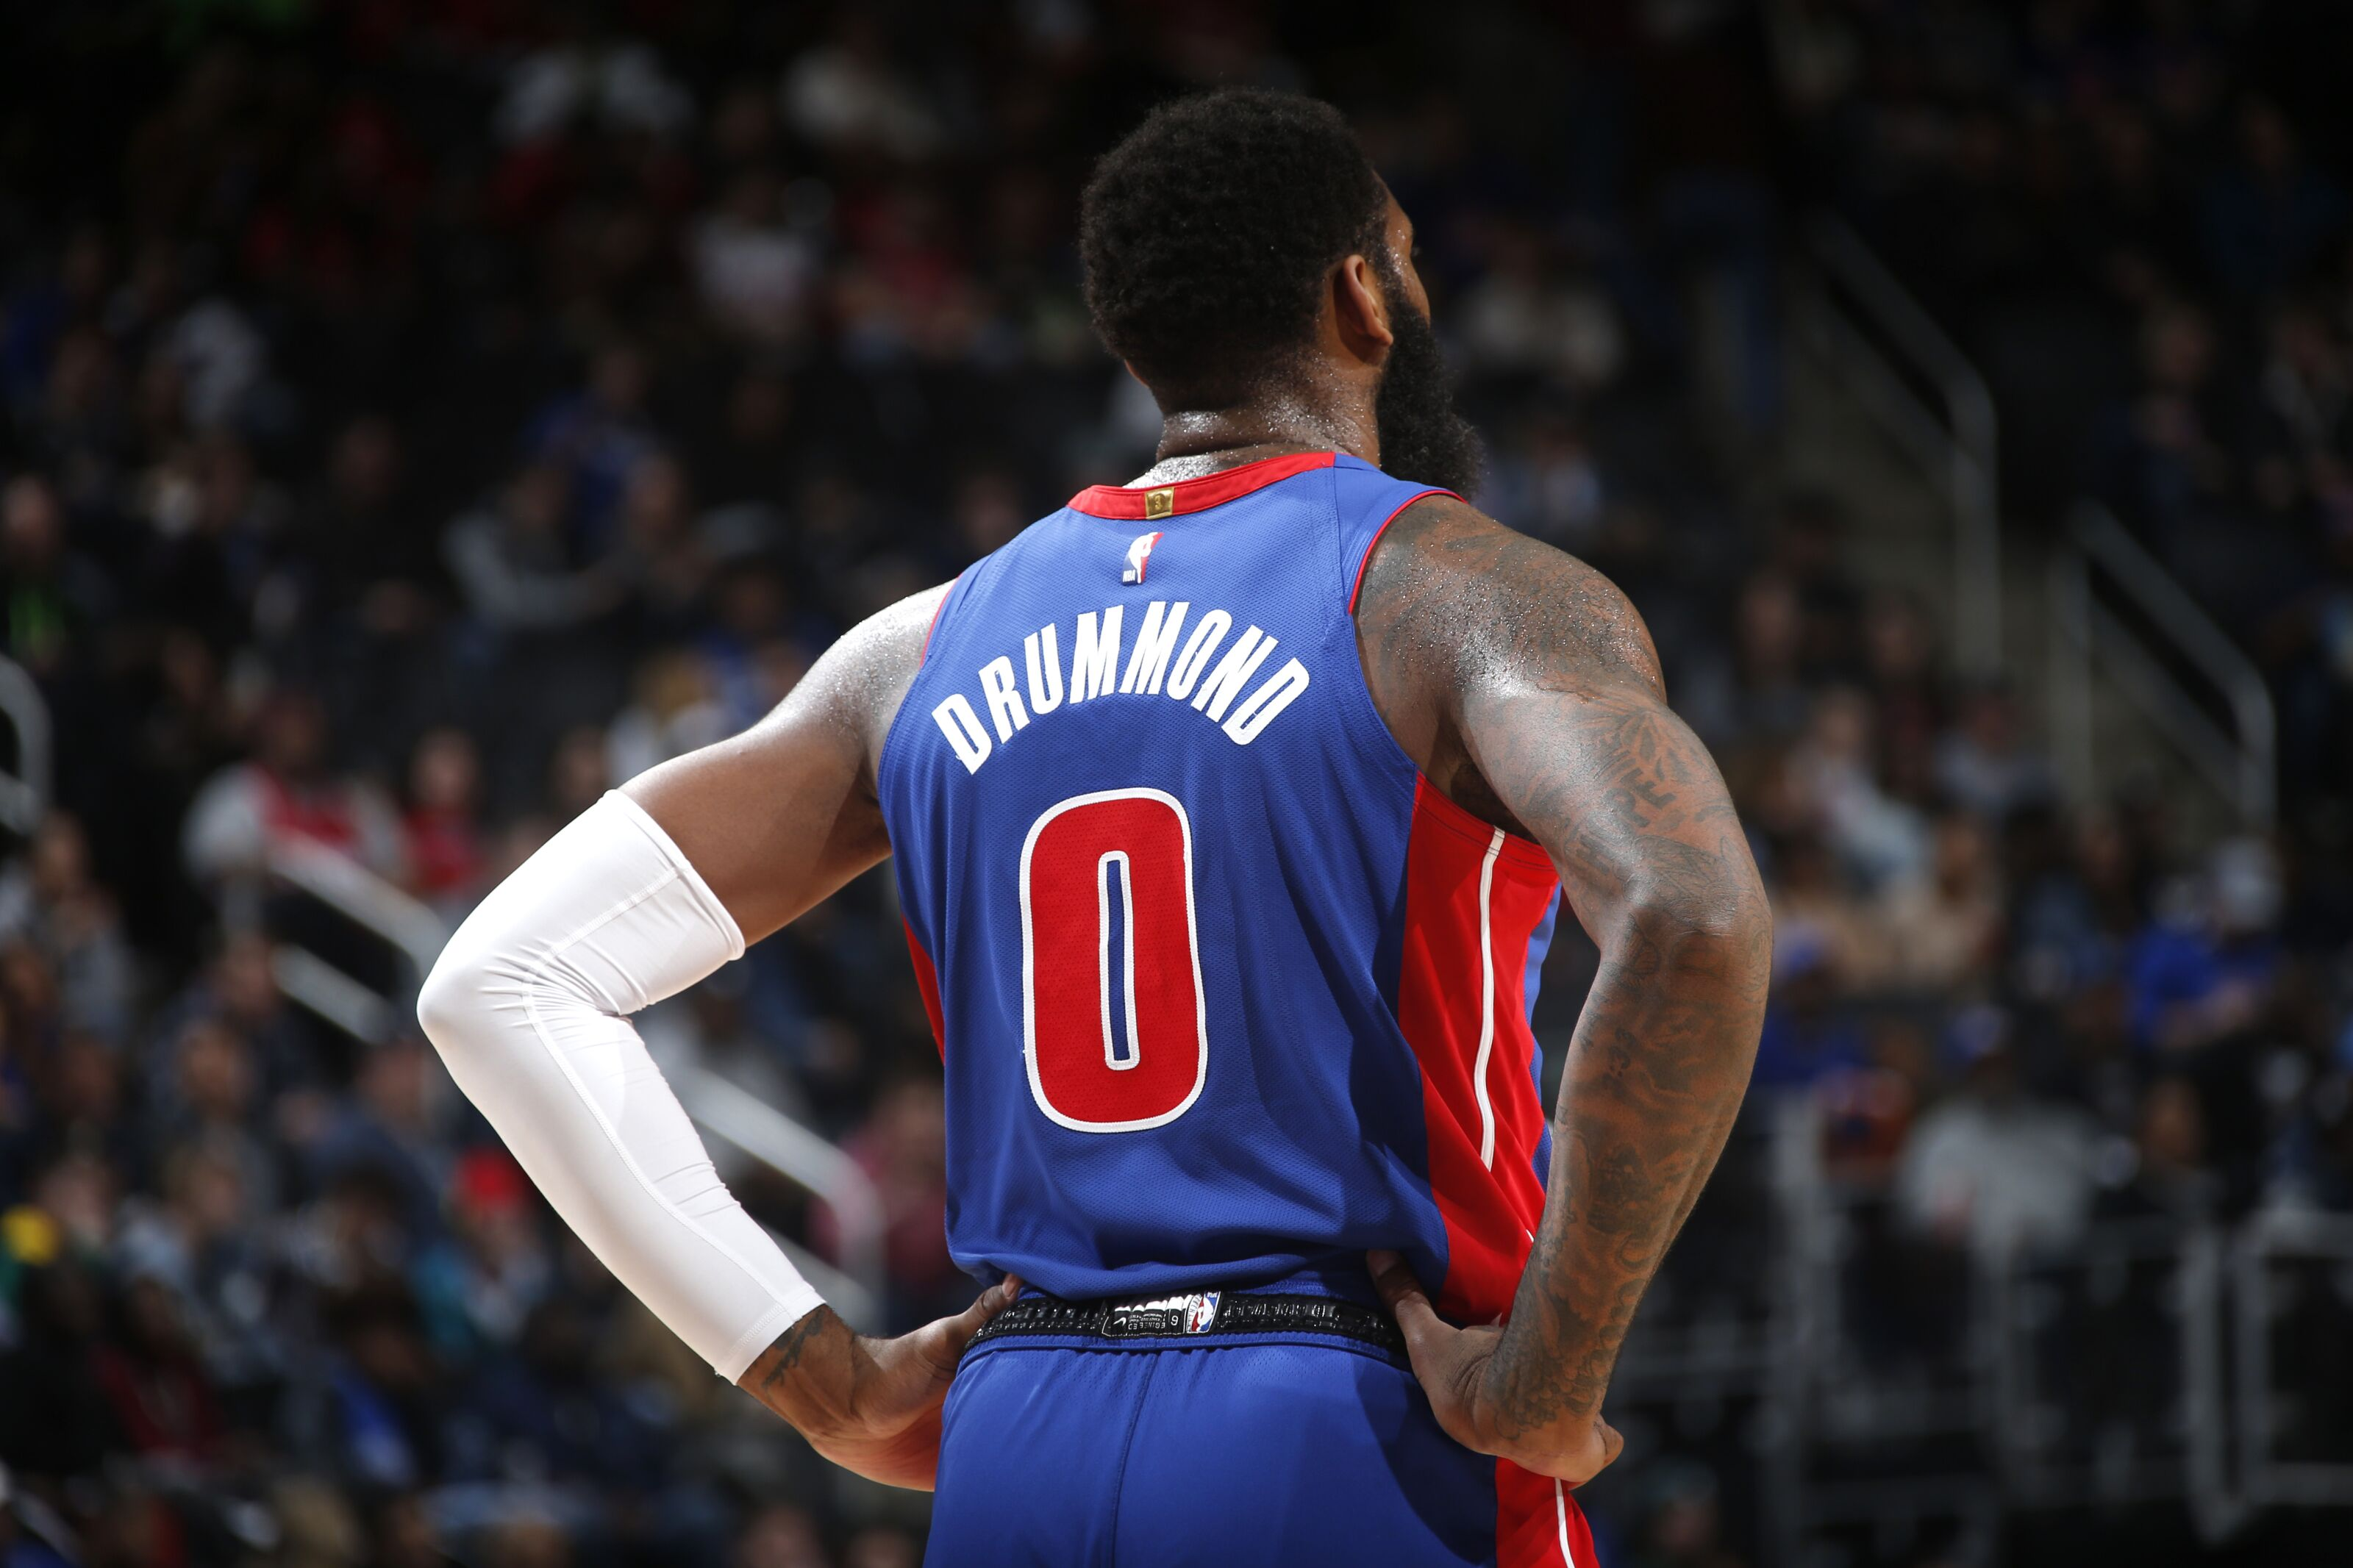 Detroit Pistons center Andre Drummond begins two-game tryout